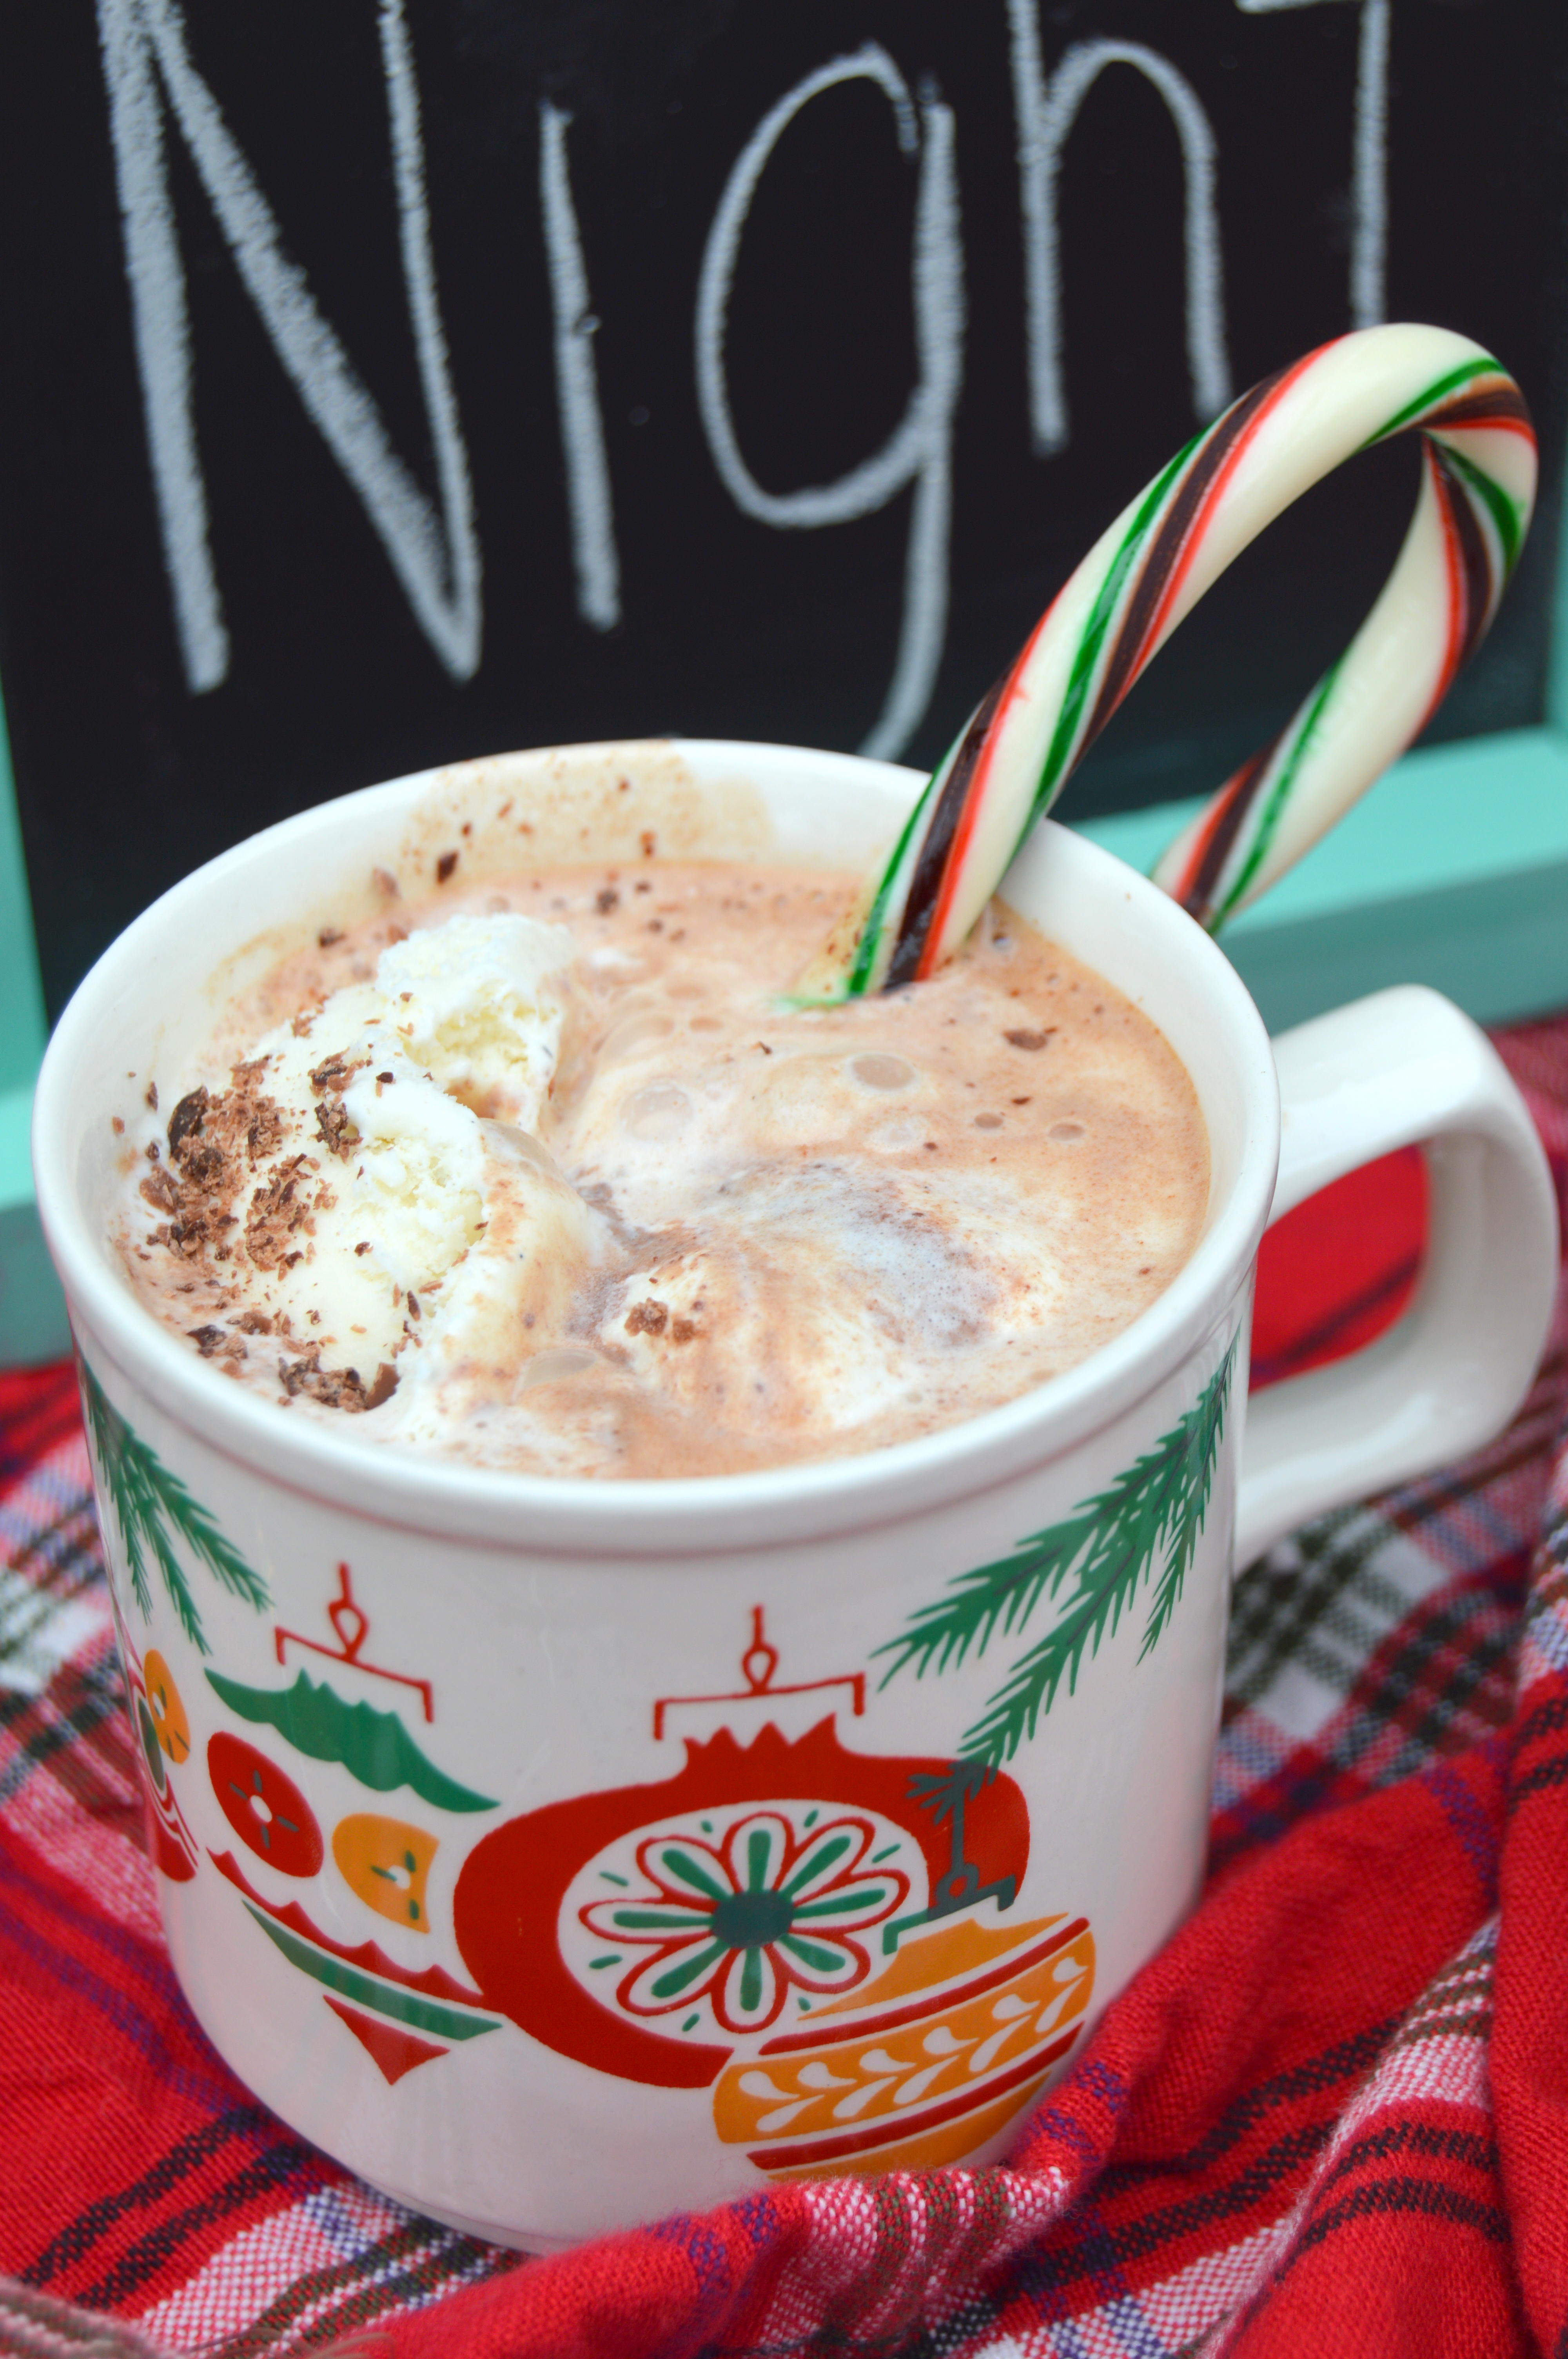 Peppermint Hot Chocolate Floats - My Big Fat Happy Life